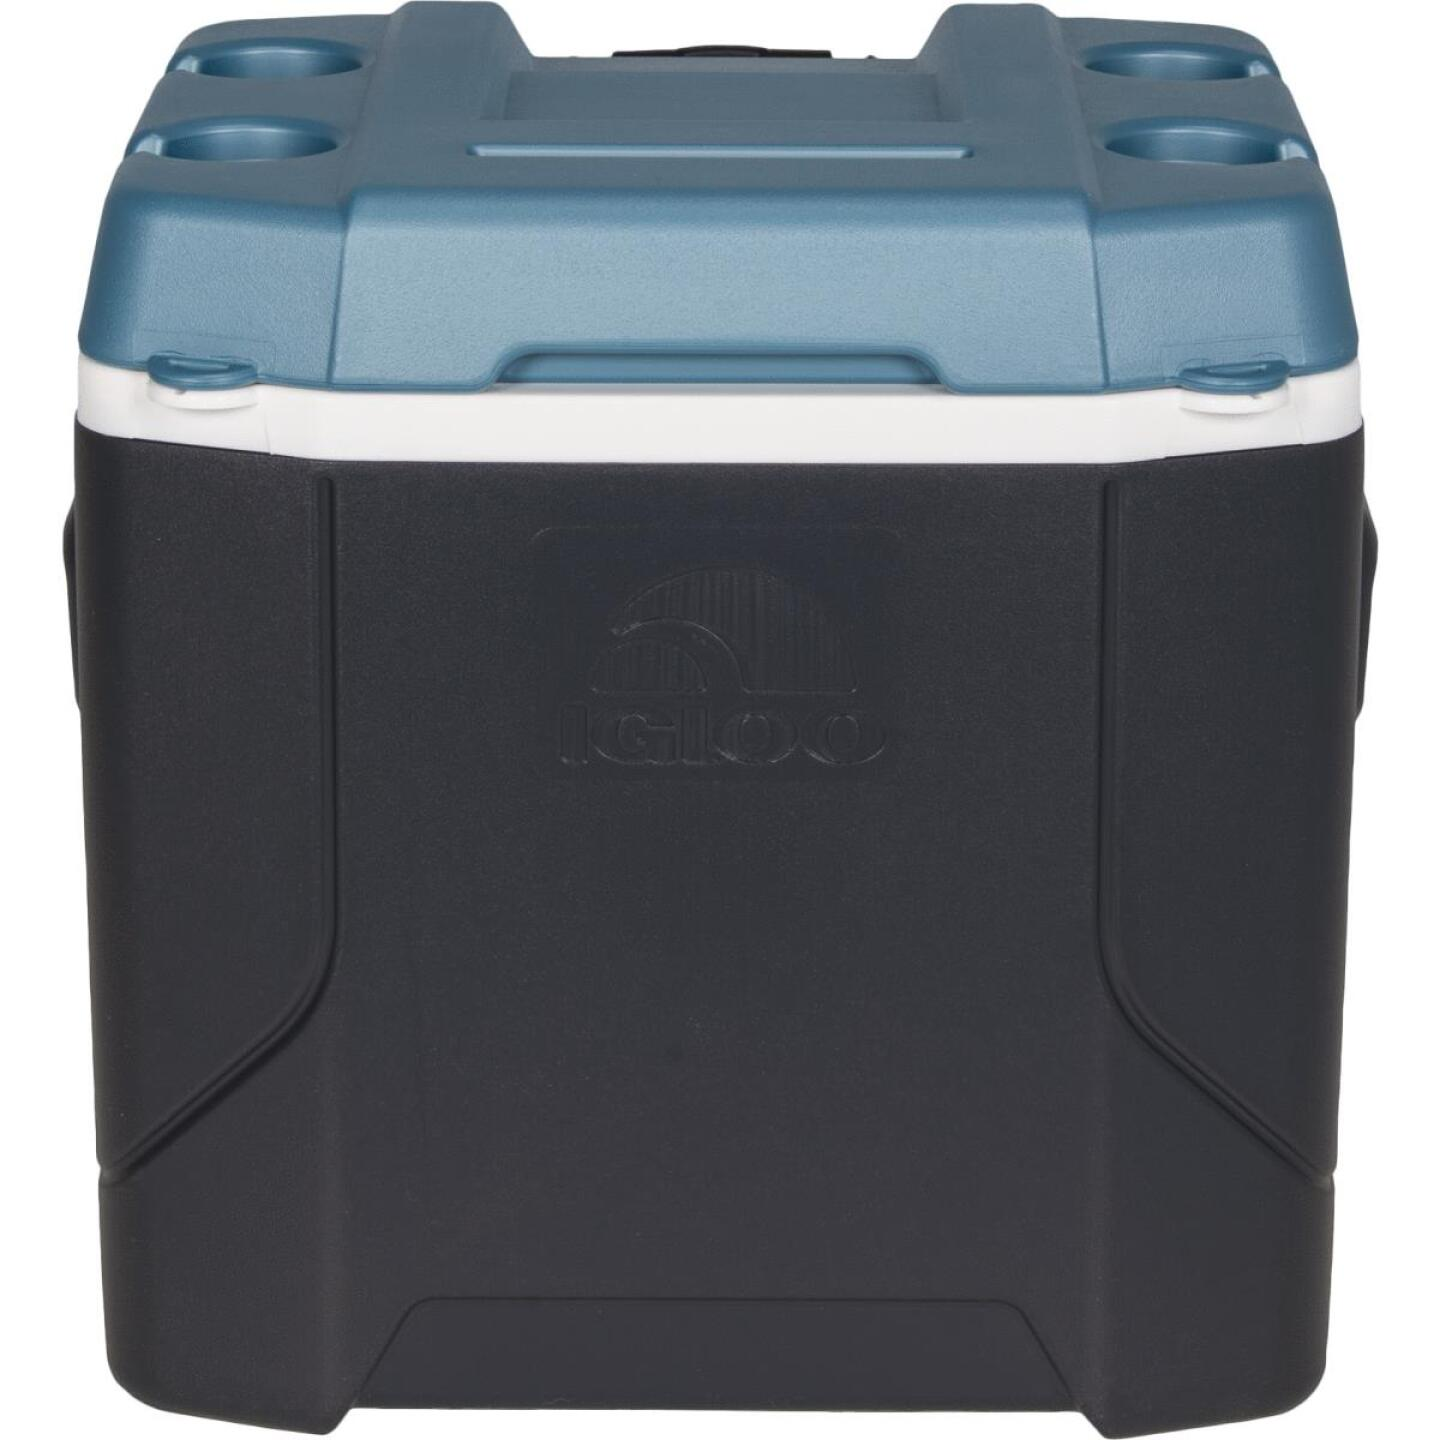 Igloo MaxCold Profile 54 Qt. 2-Wheeled Cooler, Jet Carbon & Ice Blue Image 2